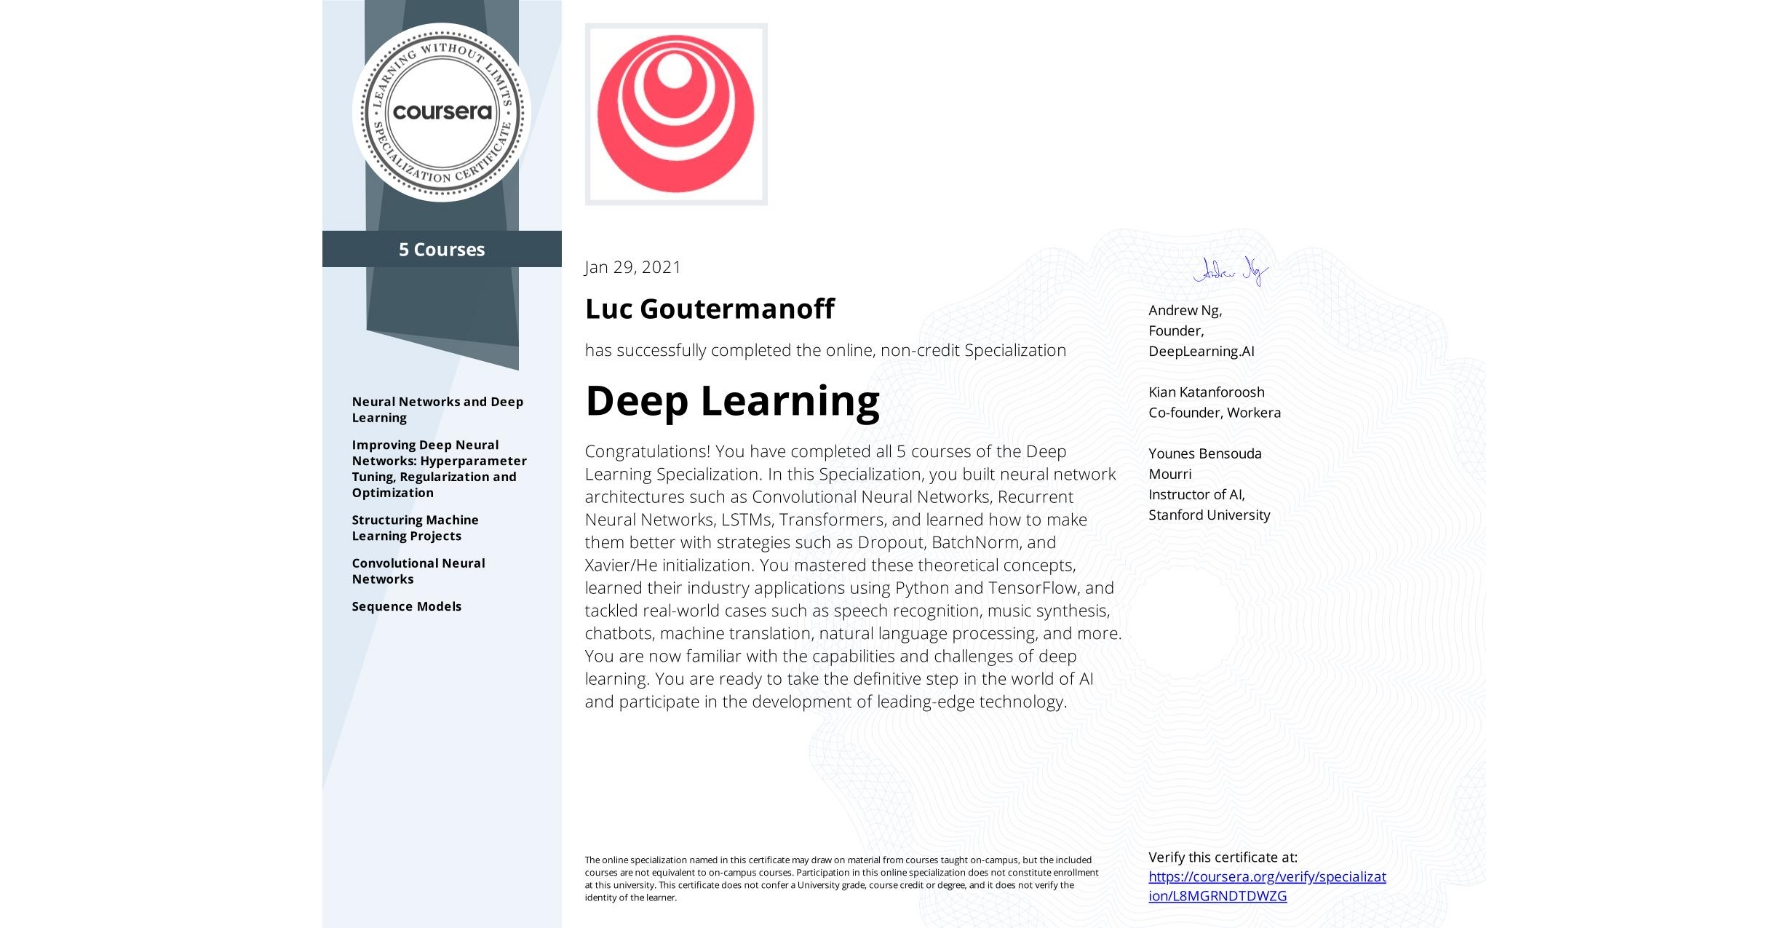 View certificate for Luc Goutermanoff, Deep Learning, offered through Coursera. Congratulations! You have completed all 5 courses of the Deep Learning Specialization.  In this Specialization, you built neural network architectures such as Convolutional Neural Networks, Recurrent Neural Networks, LSTMs, Transformers, and learned how to make them better with strategies such as Dropout, BatchNorm, and Xavier/He initialization. You mastered these theoretical concepts, learned their industry applications using Python and TensorFlow, and tackled real-world cases such as speech recognition, music synthesis, chatbots, machine translation, natural language processing, and more.  You are now familiar with the capabilities and challenges of deep learning. You are ready to take the definitive step in the world of AI and participate in the development of leading-edge technology.